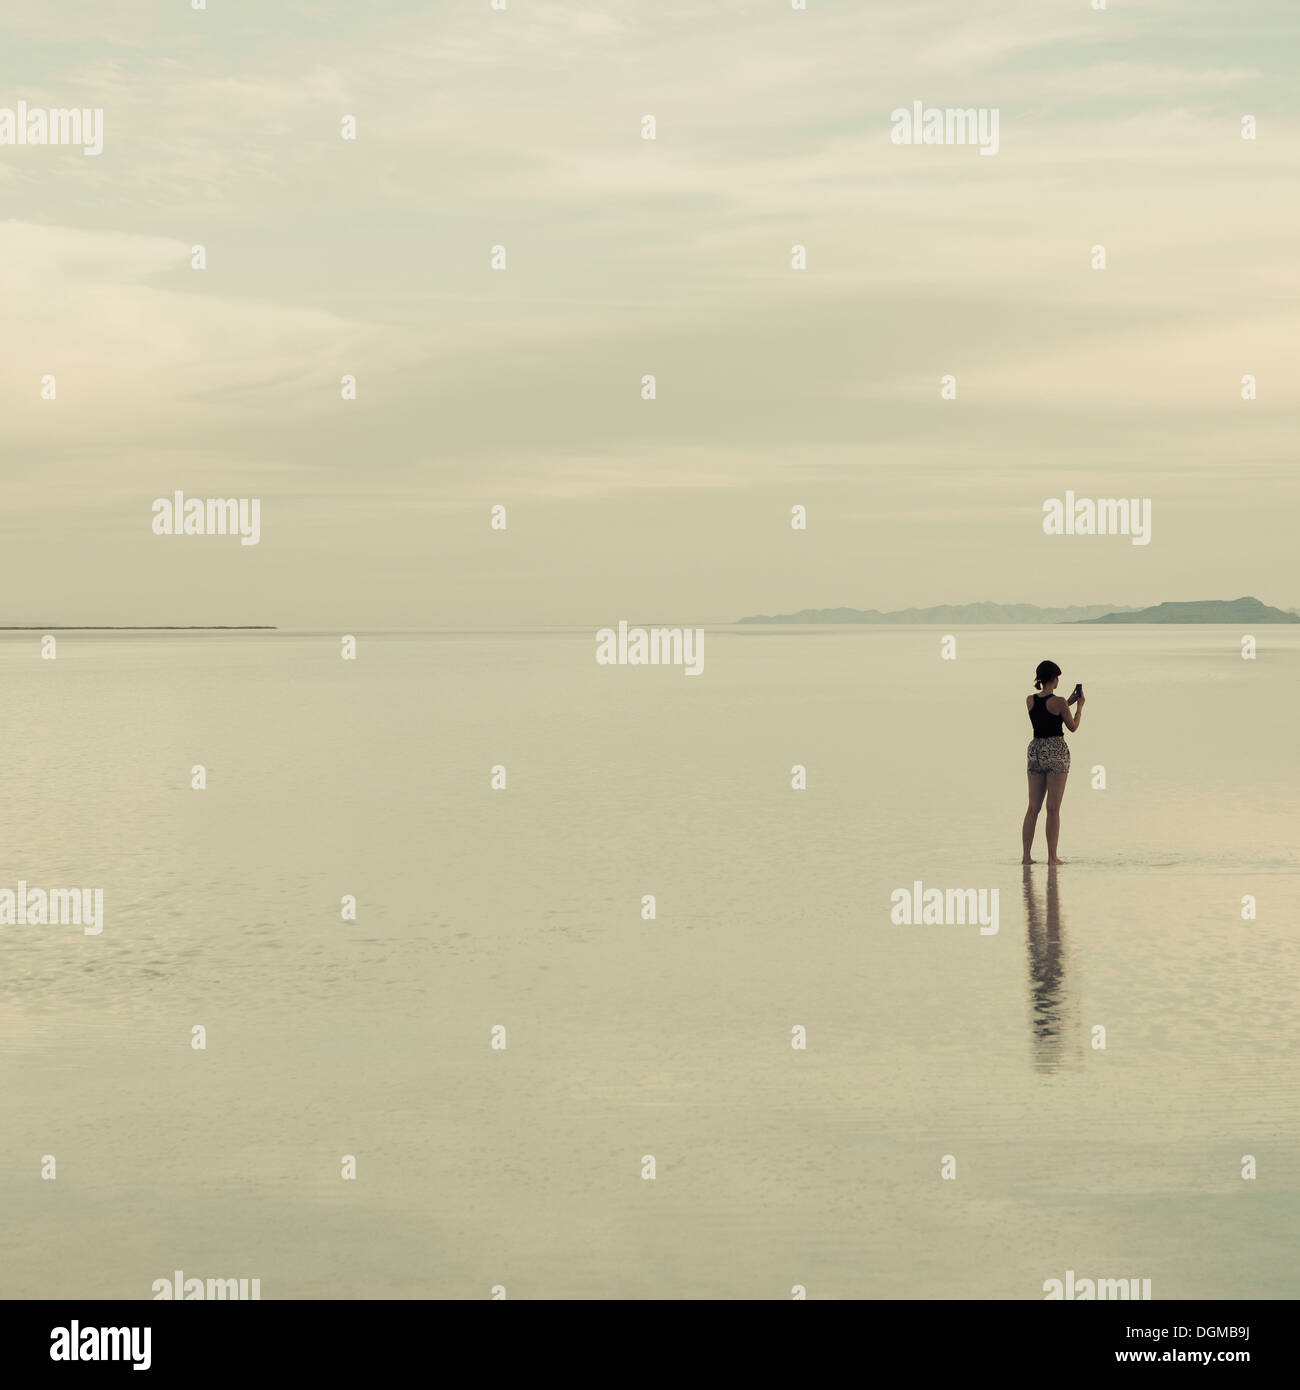 A woman standing on the flooded Bonneville Salt Flats, taking a photograph with a smart phone. - Stock Image